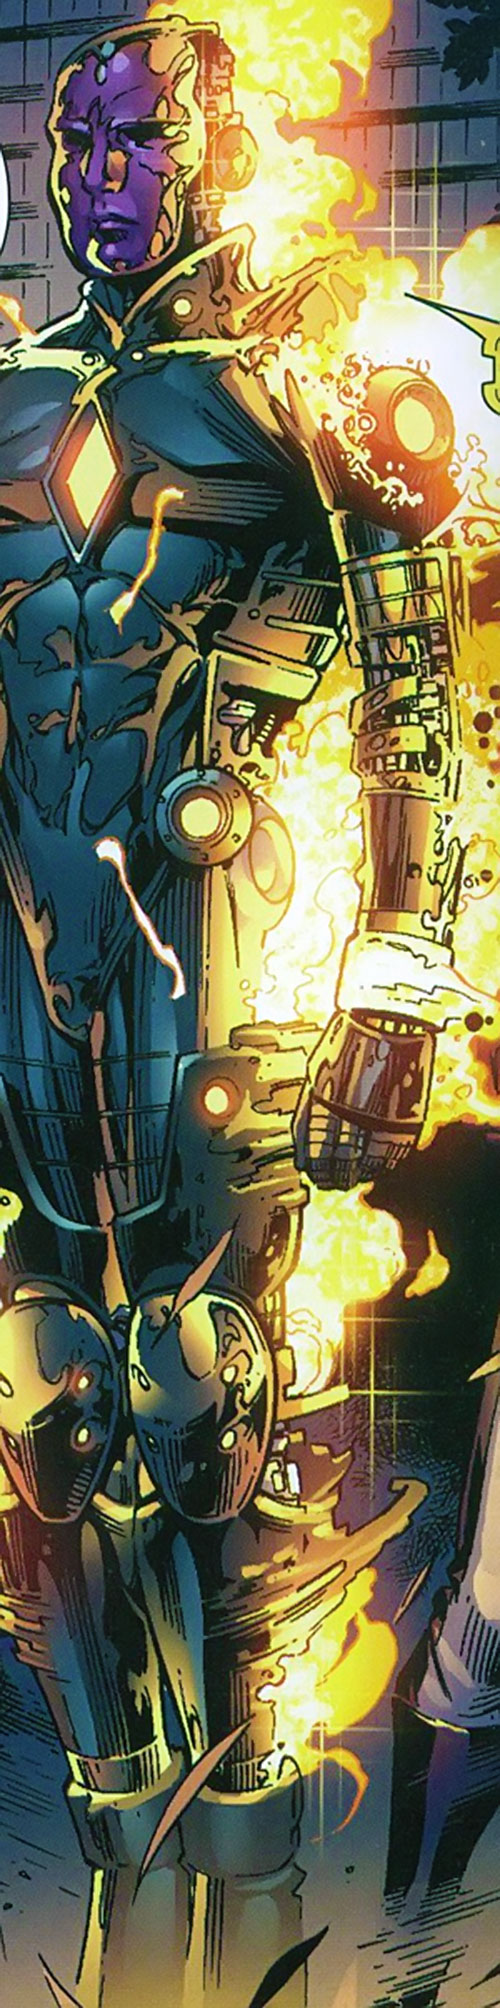 Vision of the Younger Avengers (Marvel Comics) with apparent robotics